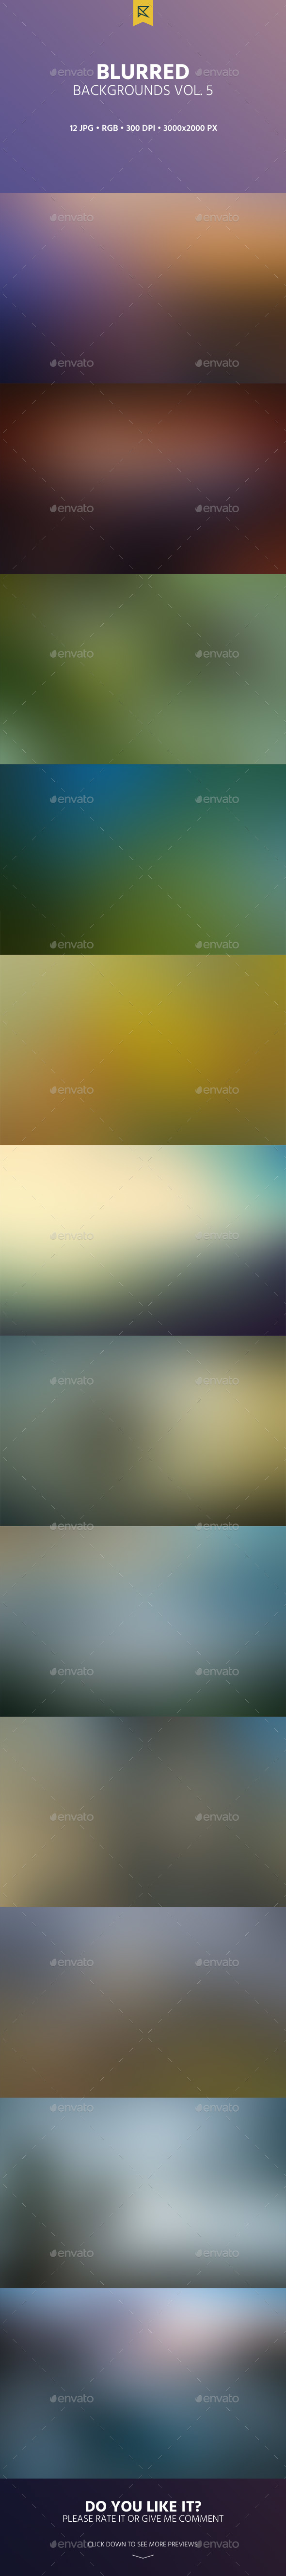 12 Blurred Backgrounds Vol. 5 - Backgrounds Graphics